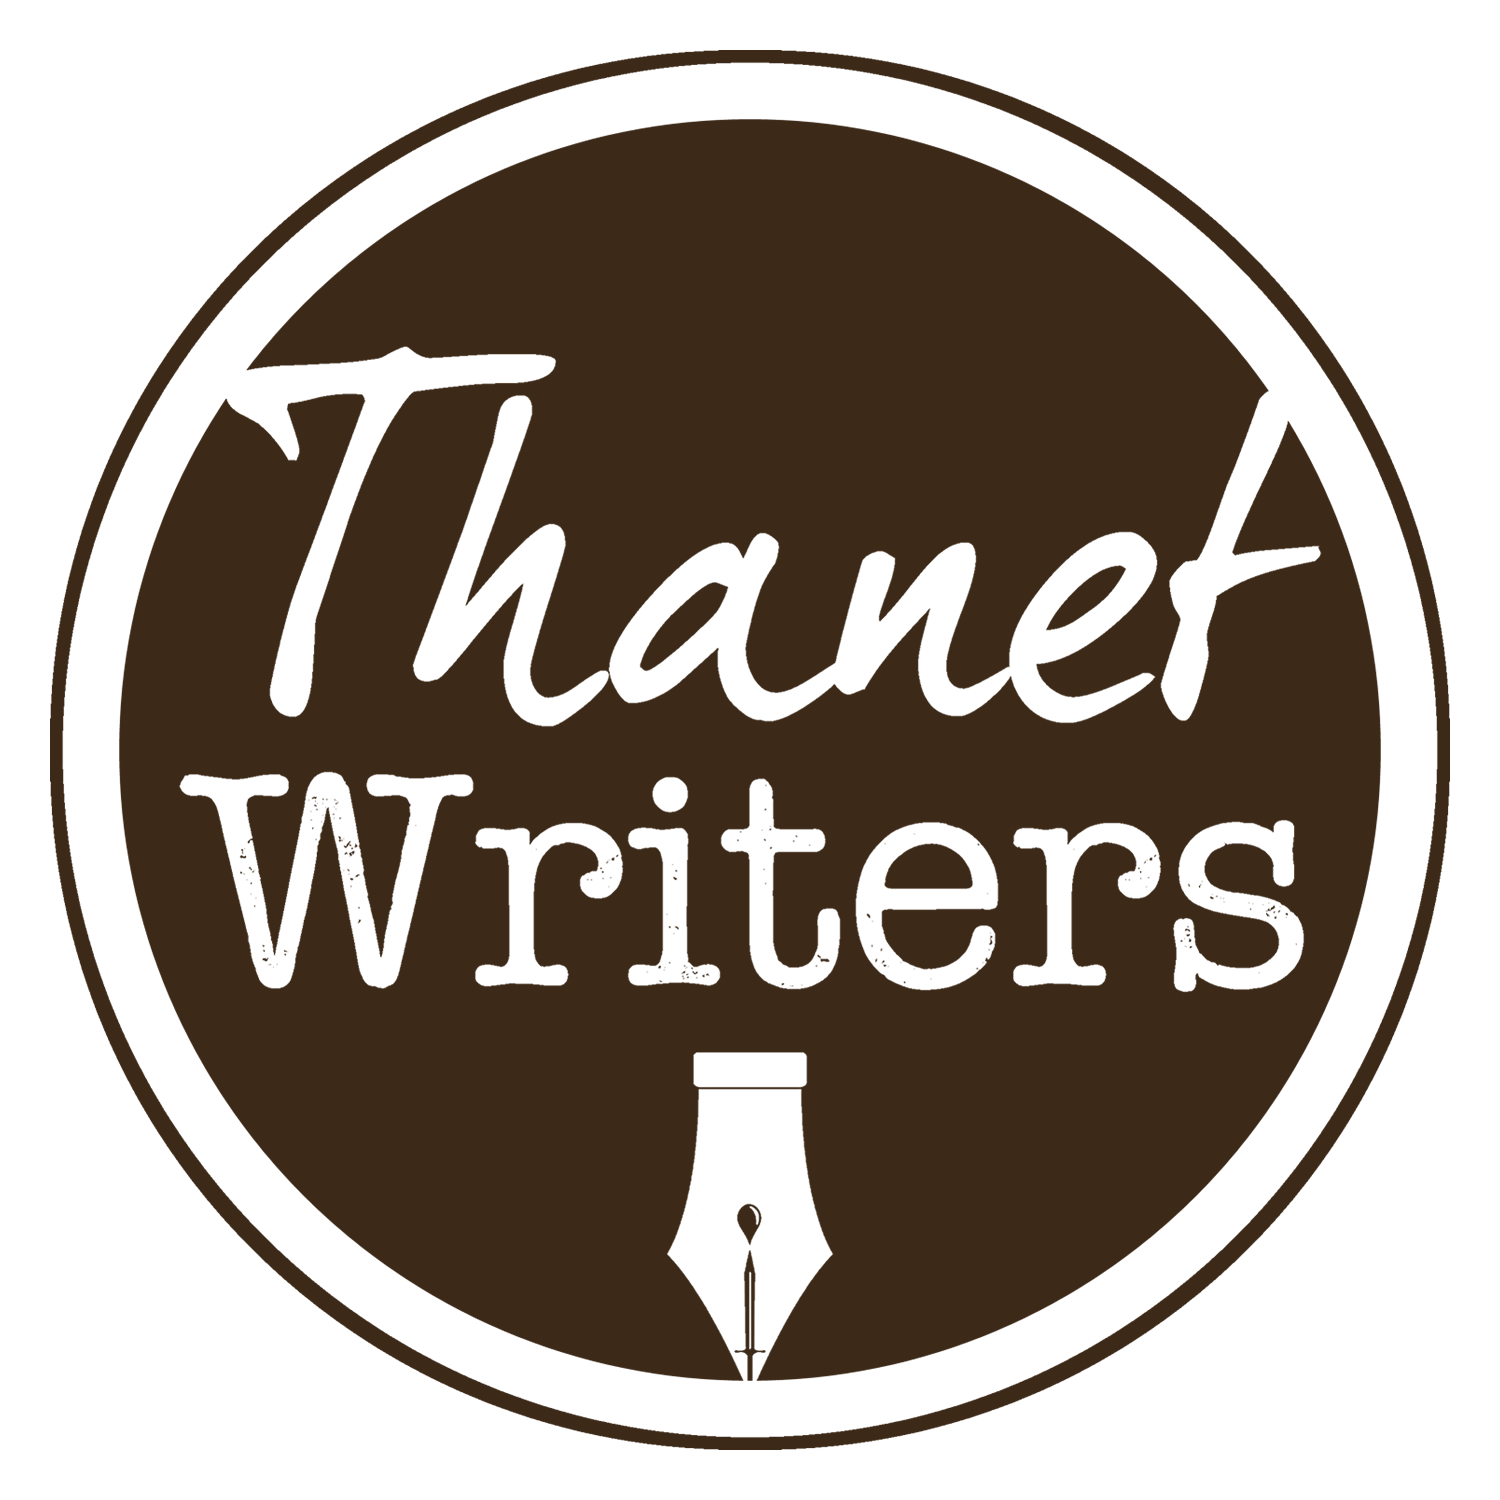 Image of Thanet Writers